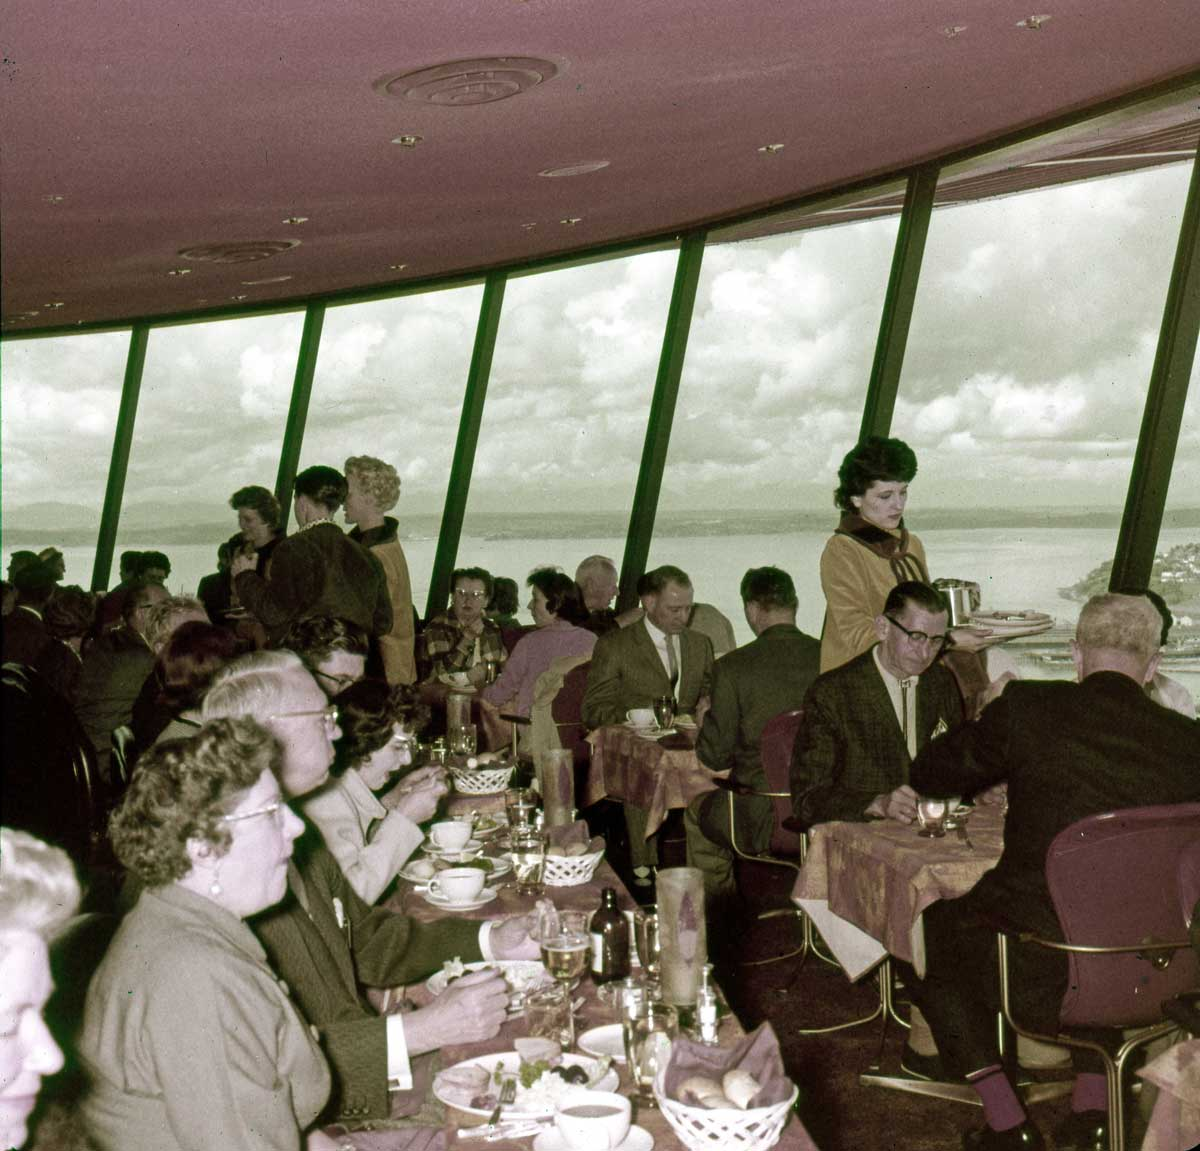 Z Space Needle dining a pana vue slideWEBSpace Needle   DorpatSherrardLomont. Dinner Seattle Space Needle. Home Design Ideas